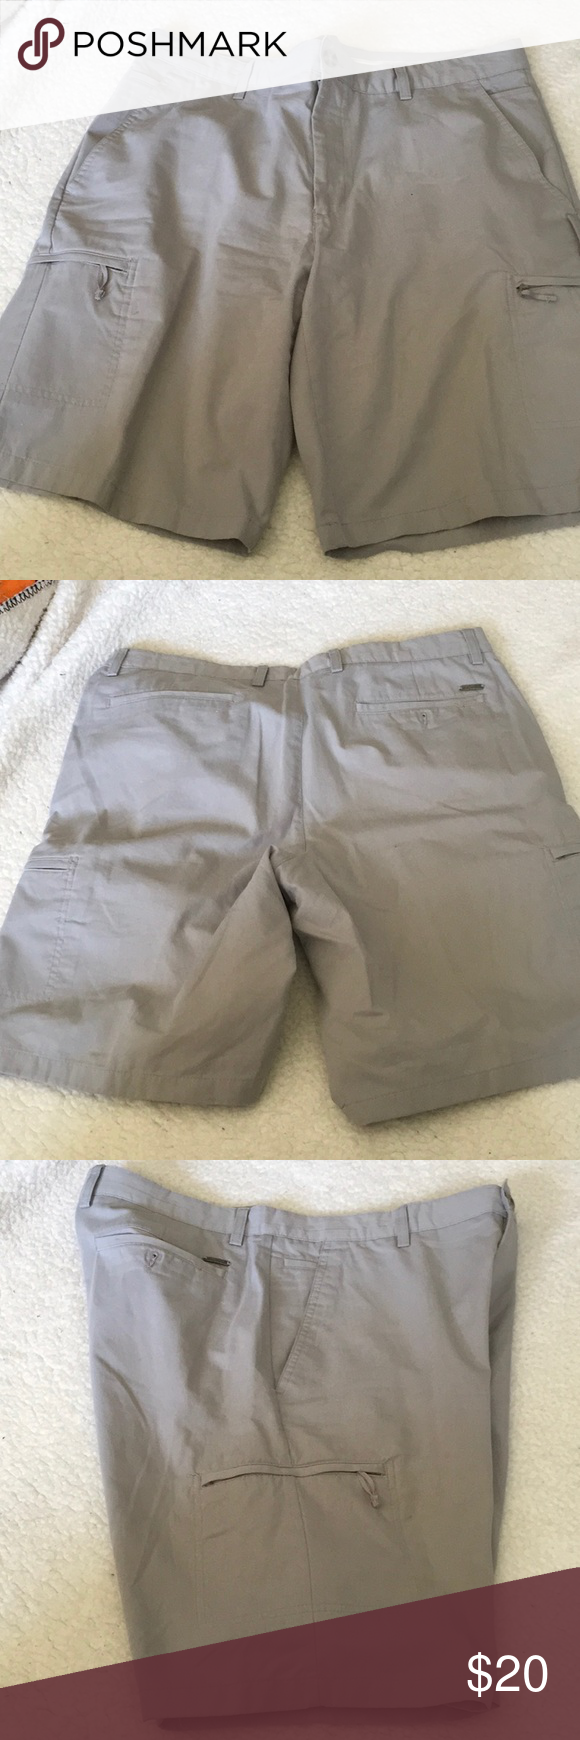 Men S Greg Norman Golf Shorts 36 Very Good Condition Cross Posted No Lowball Offers Bundle To Save Greg Norman C Golf Shorts Greg Norman Golf Greg Norman